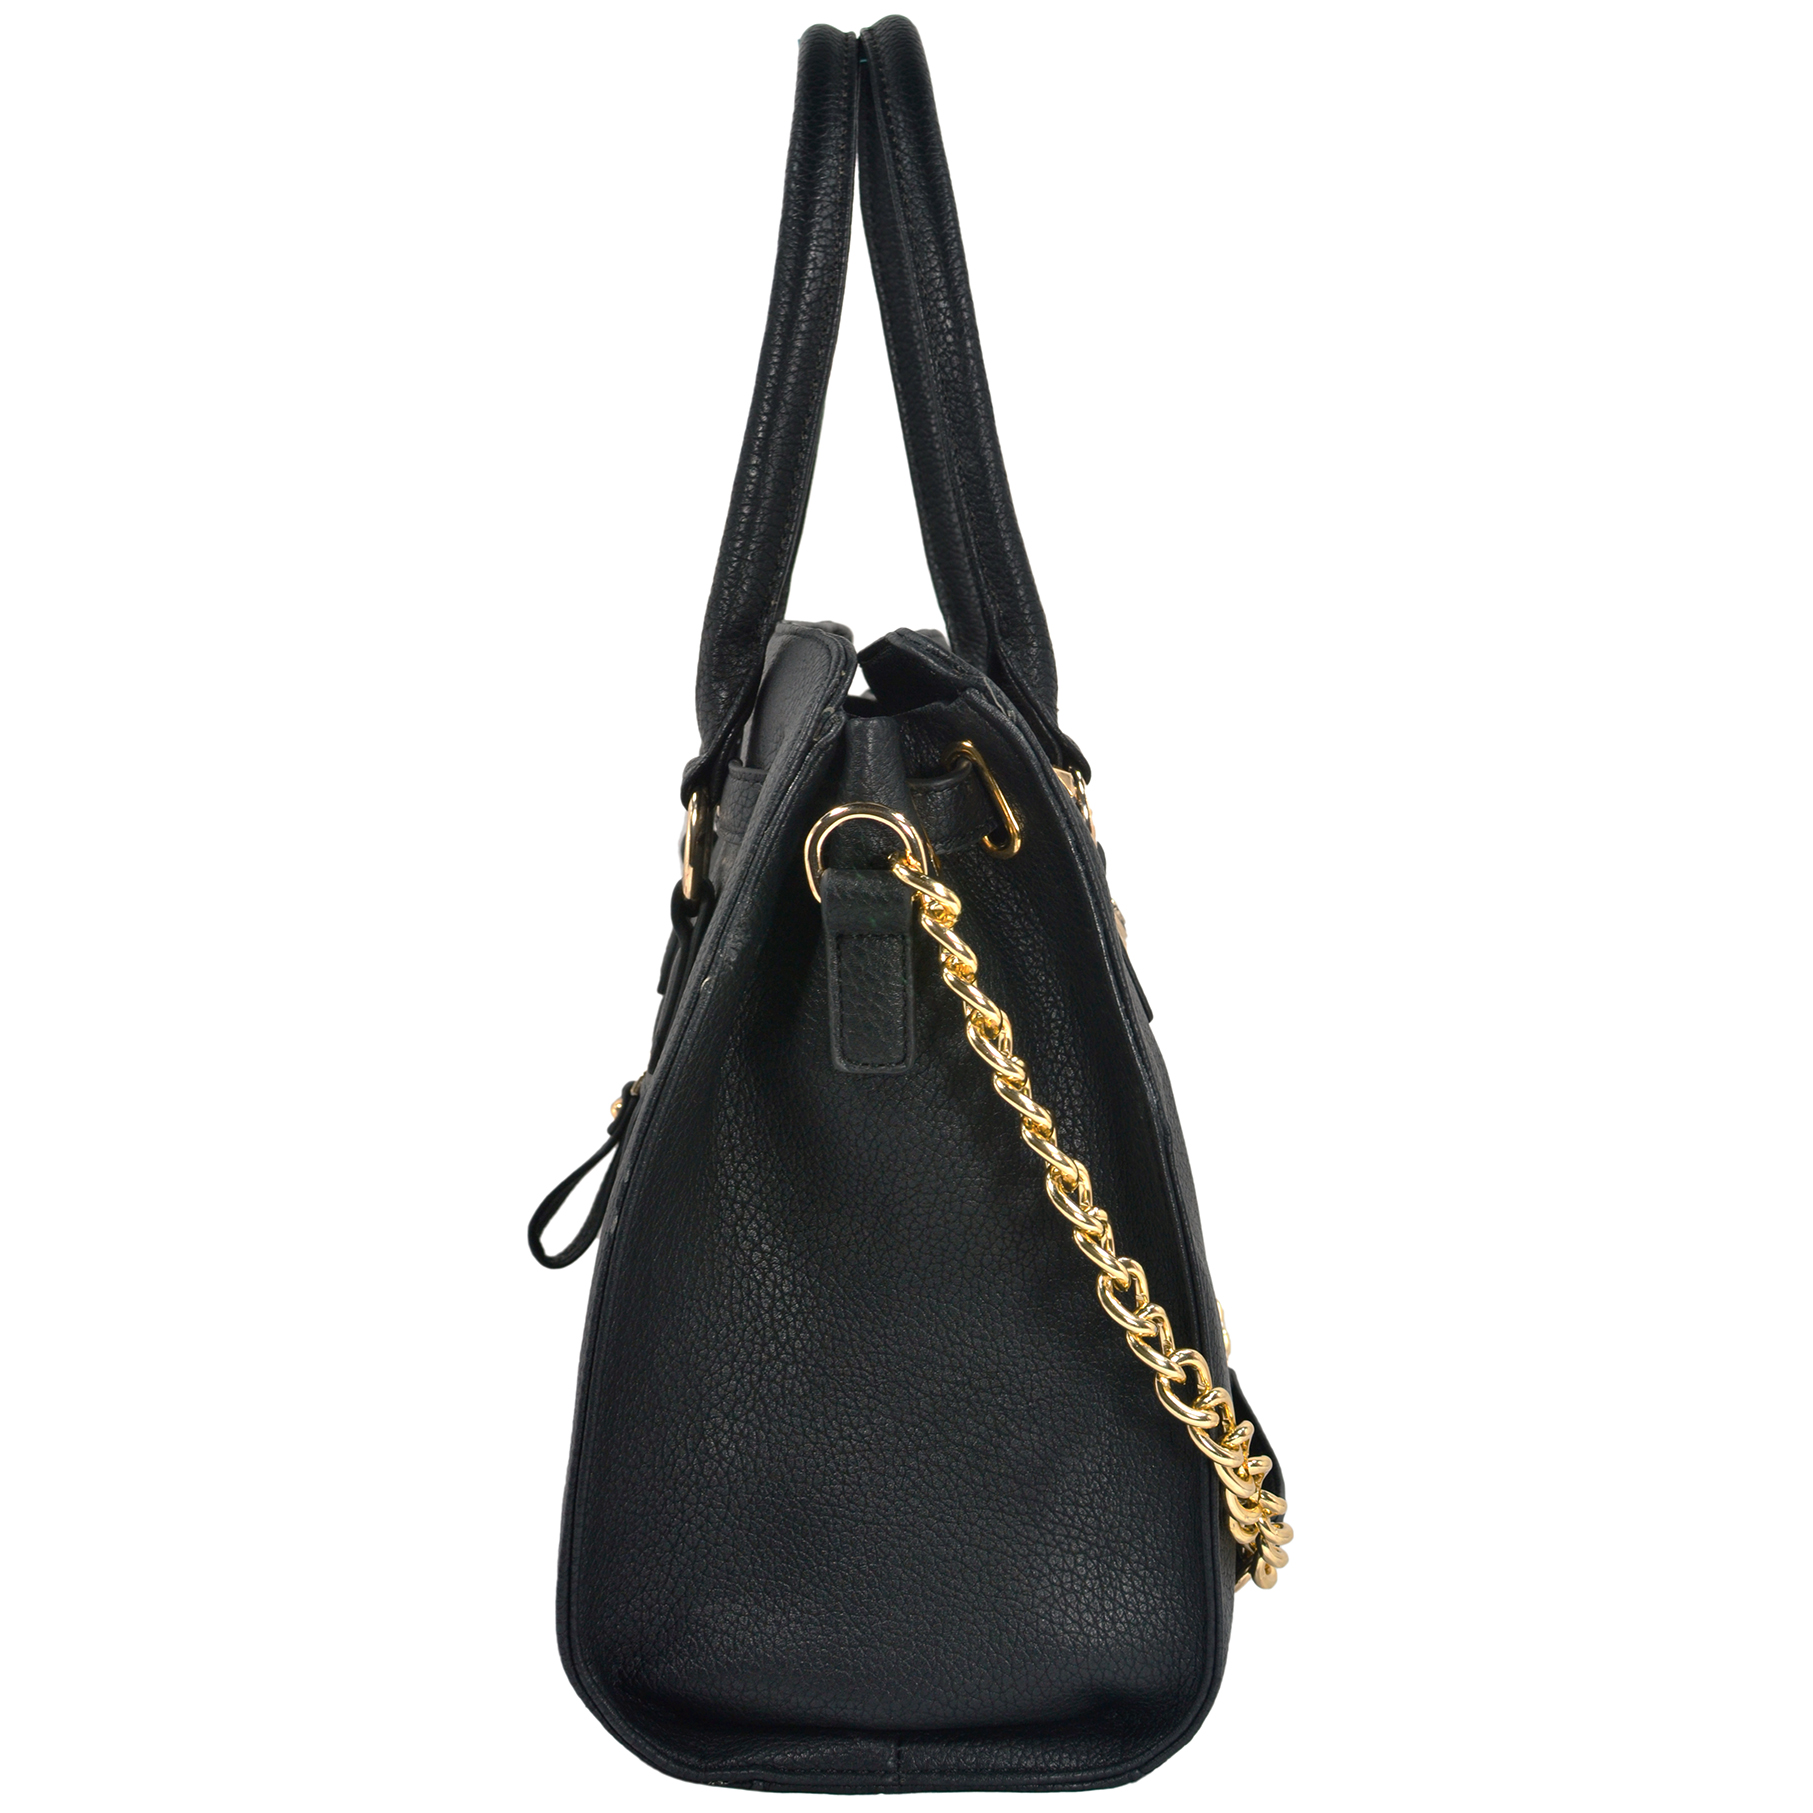 HALEY Black Bowler Style Handbag Side